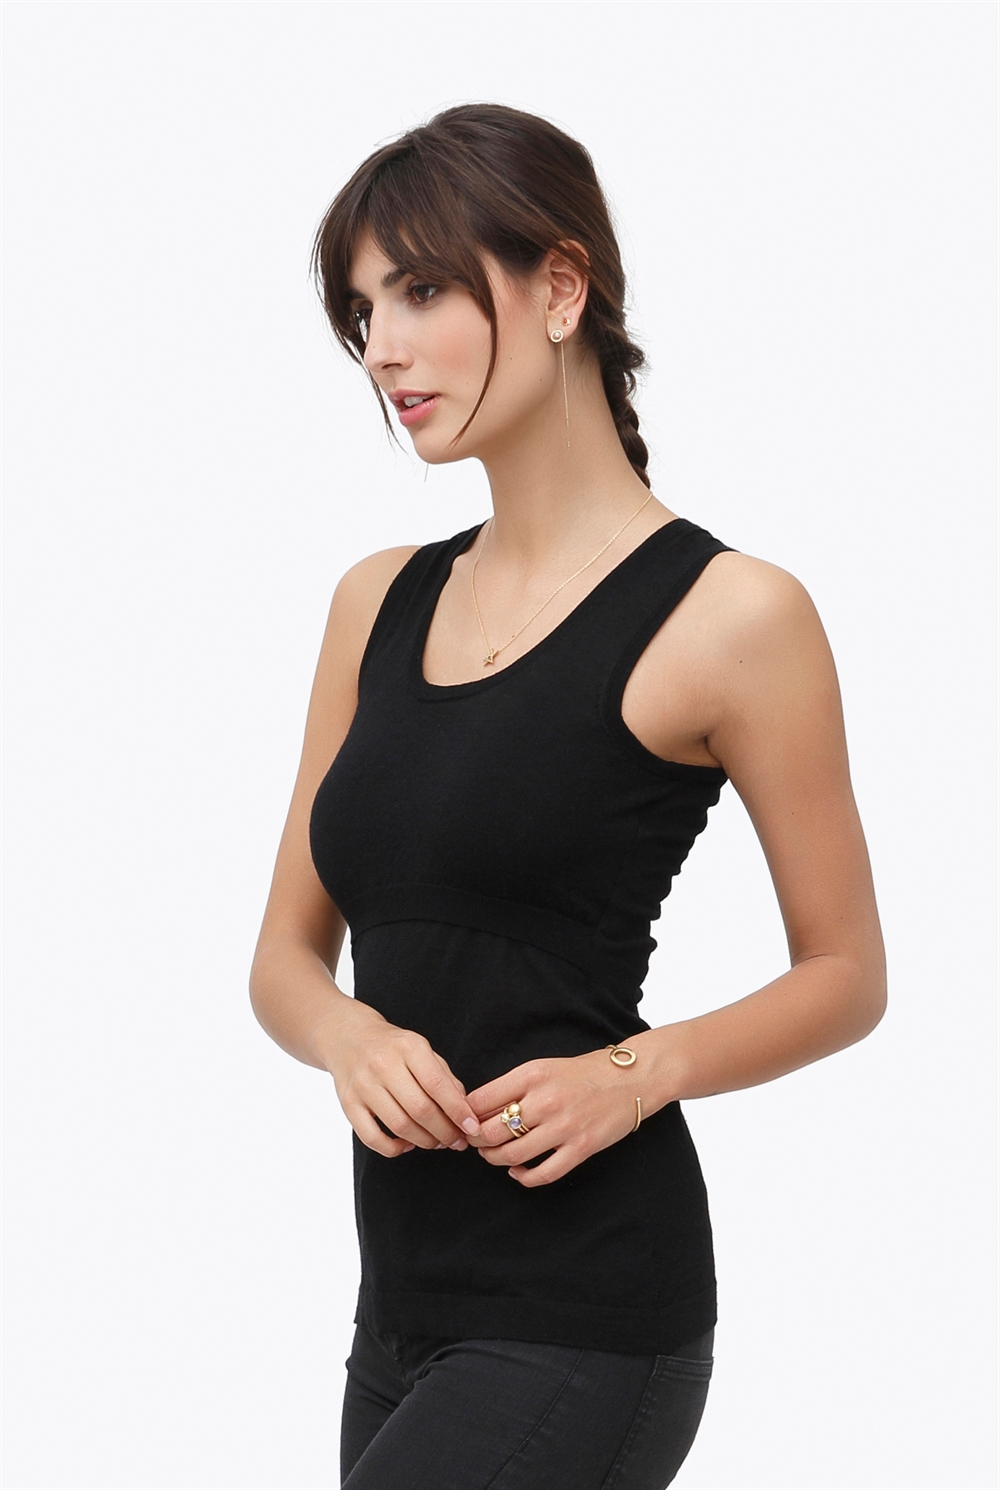 Black nursing top - 100% wool